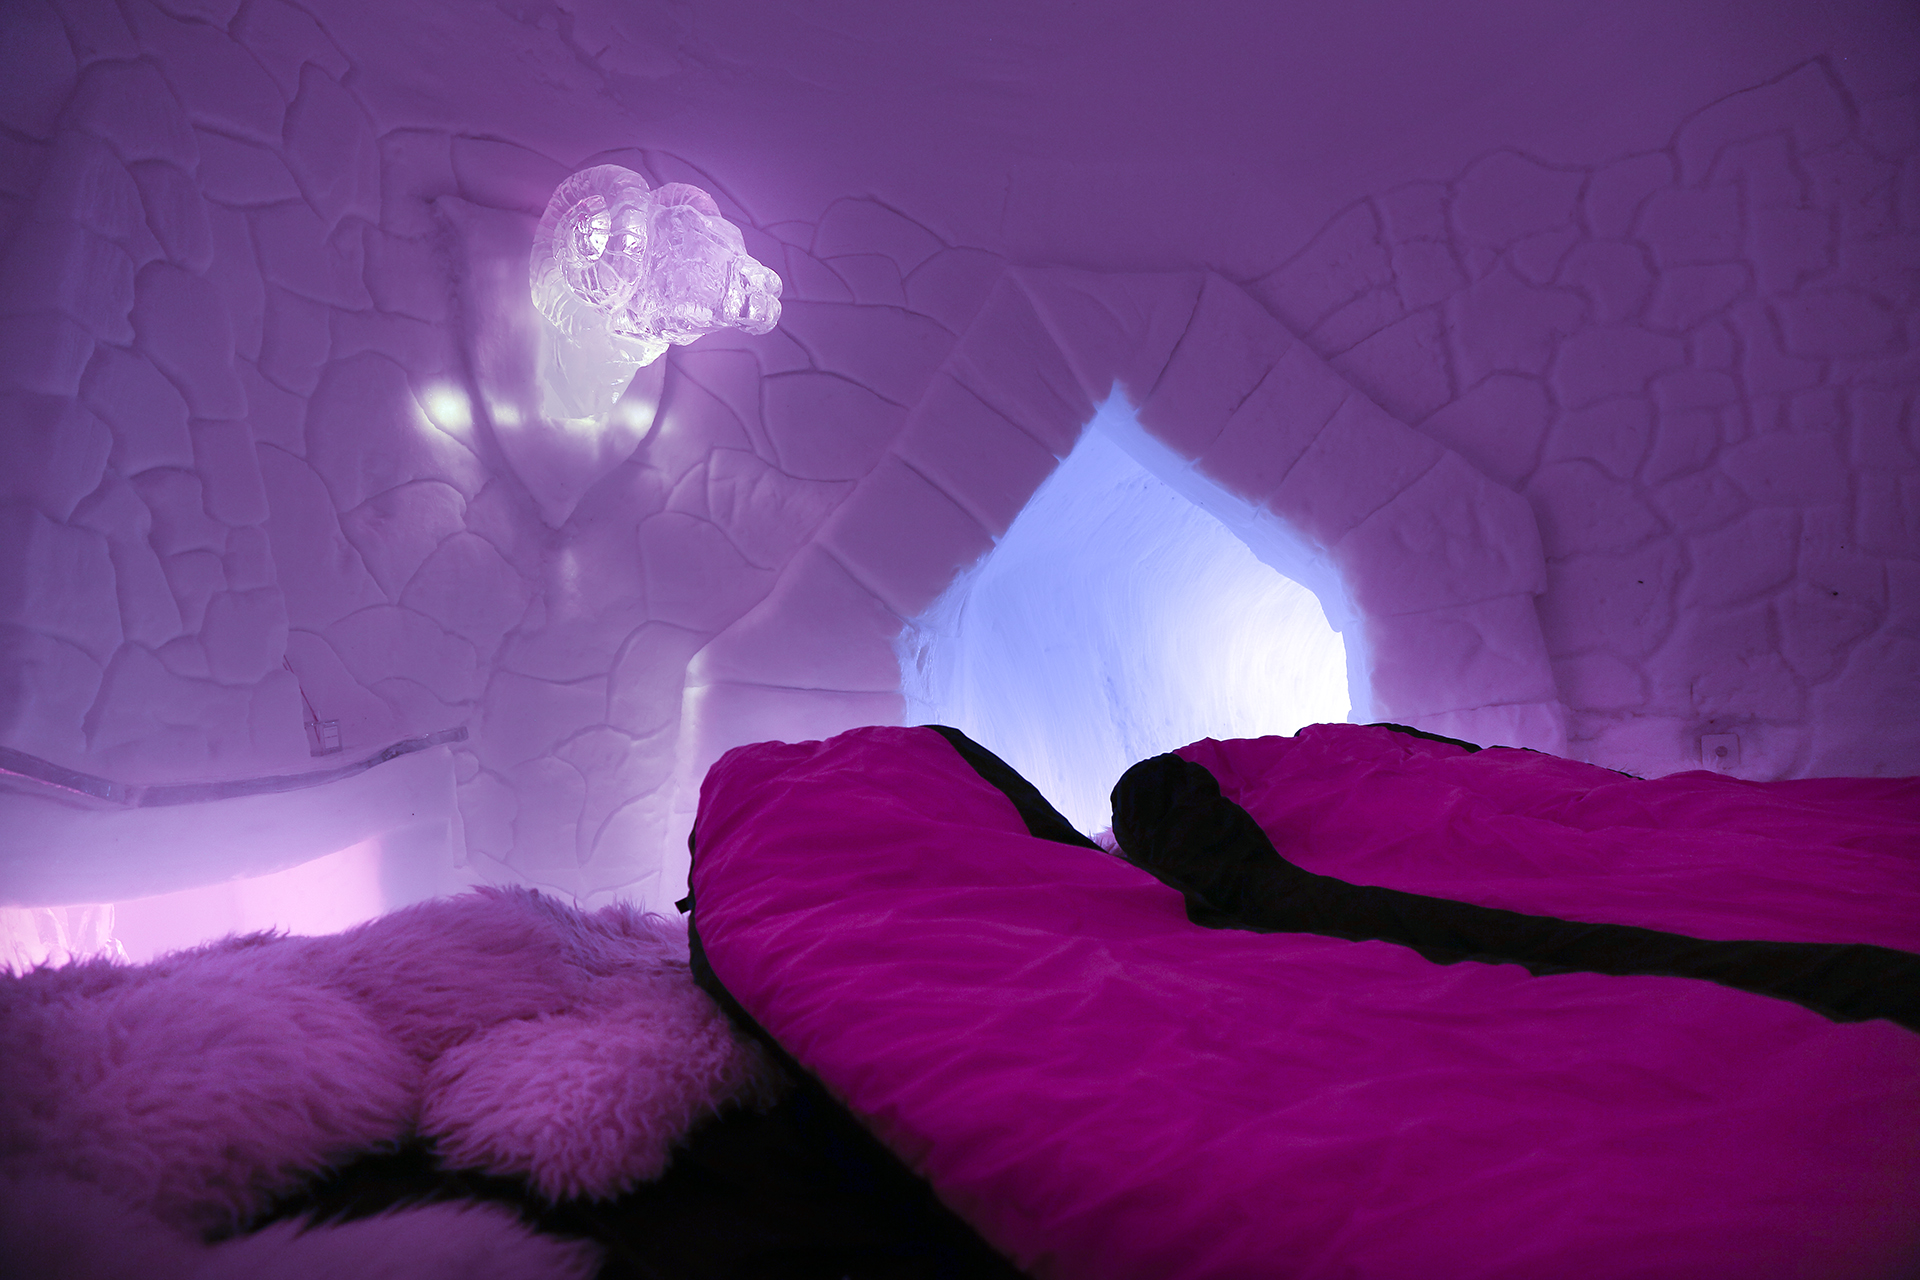 Pure Snow Top 10 Most Amazing Places To Stay In The Snow - Igloo Hotel 4.jpg